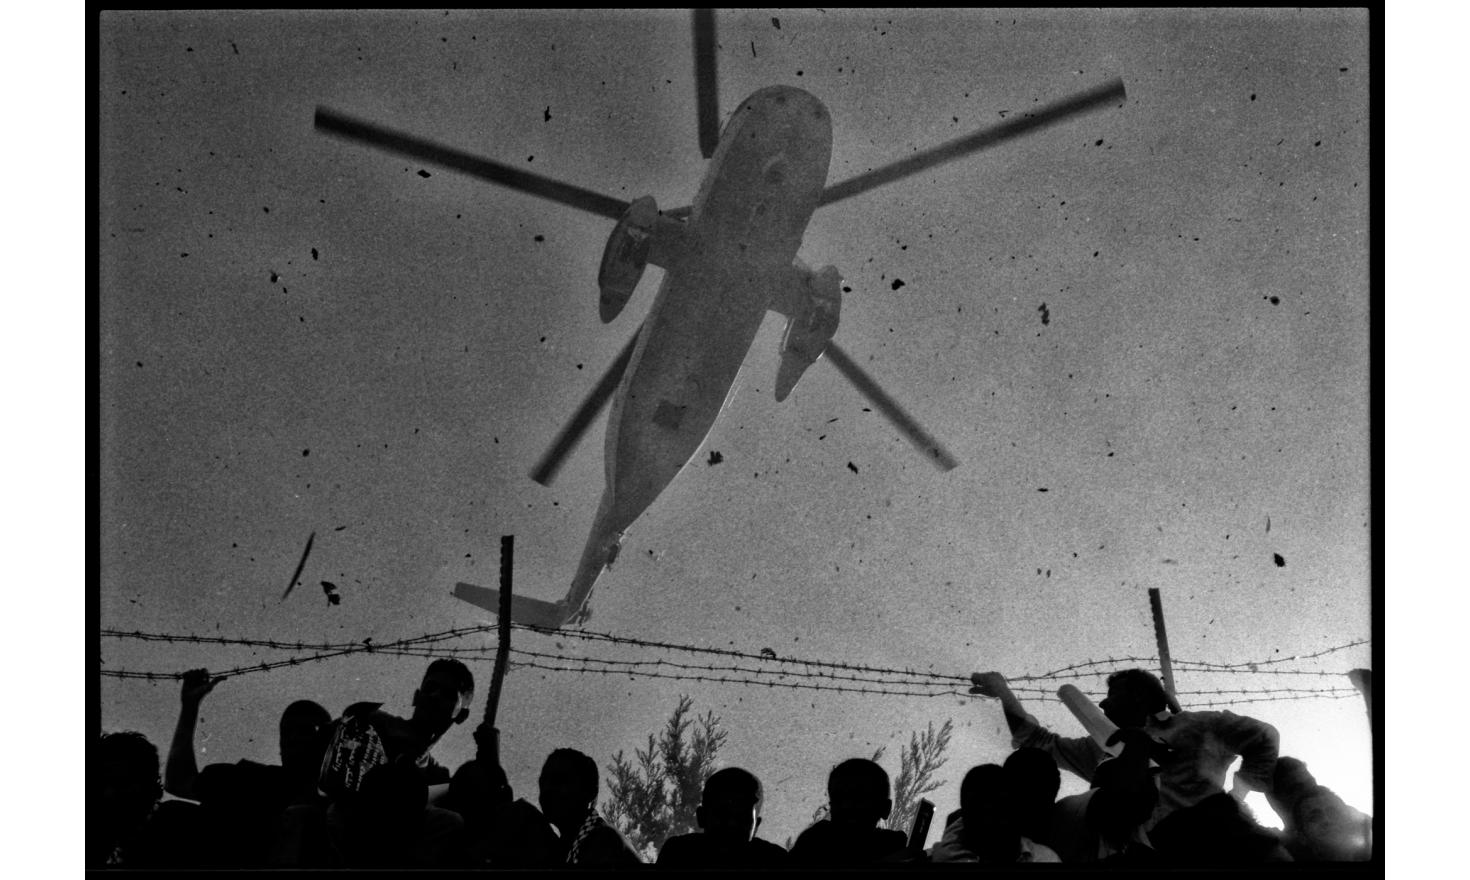 Helicopter bringing the remains of Yasser Arafat. Ramallah, Occupied West bank. November 2004.